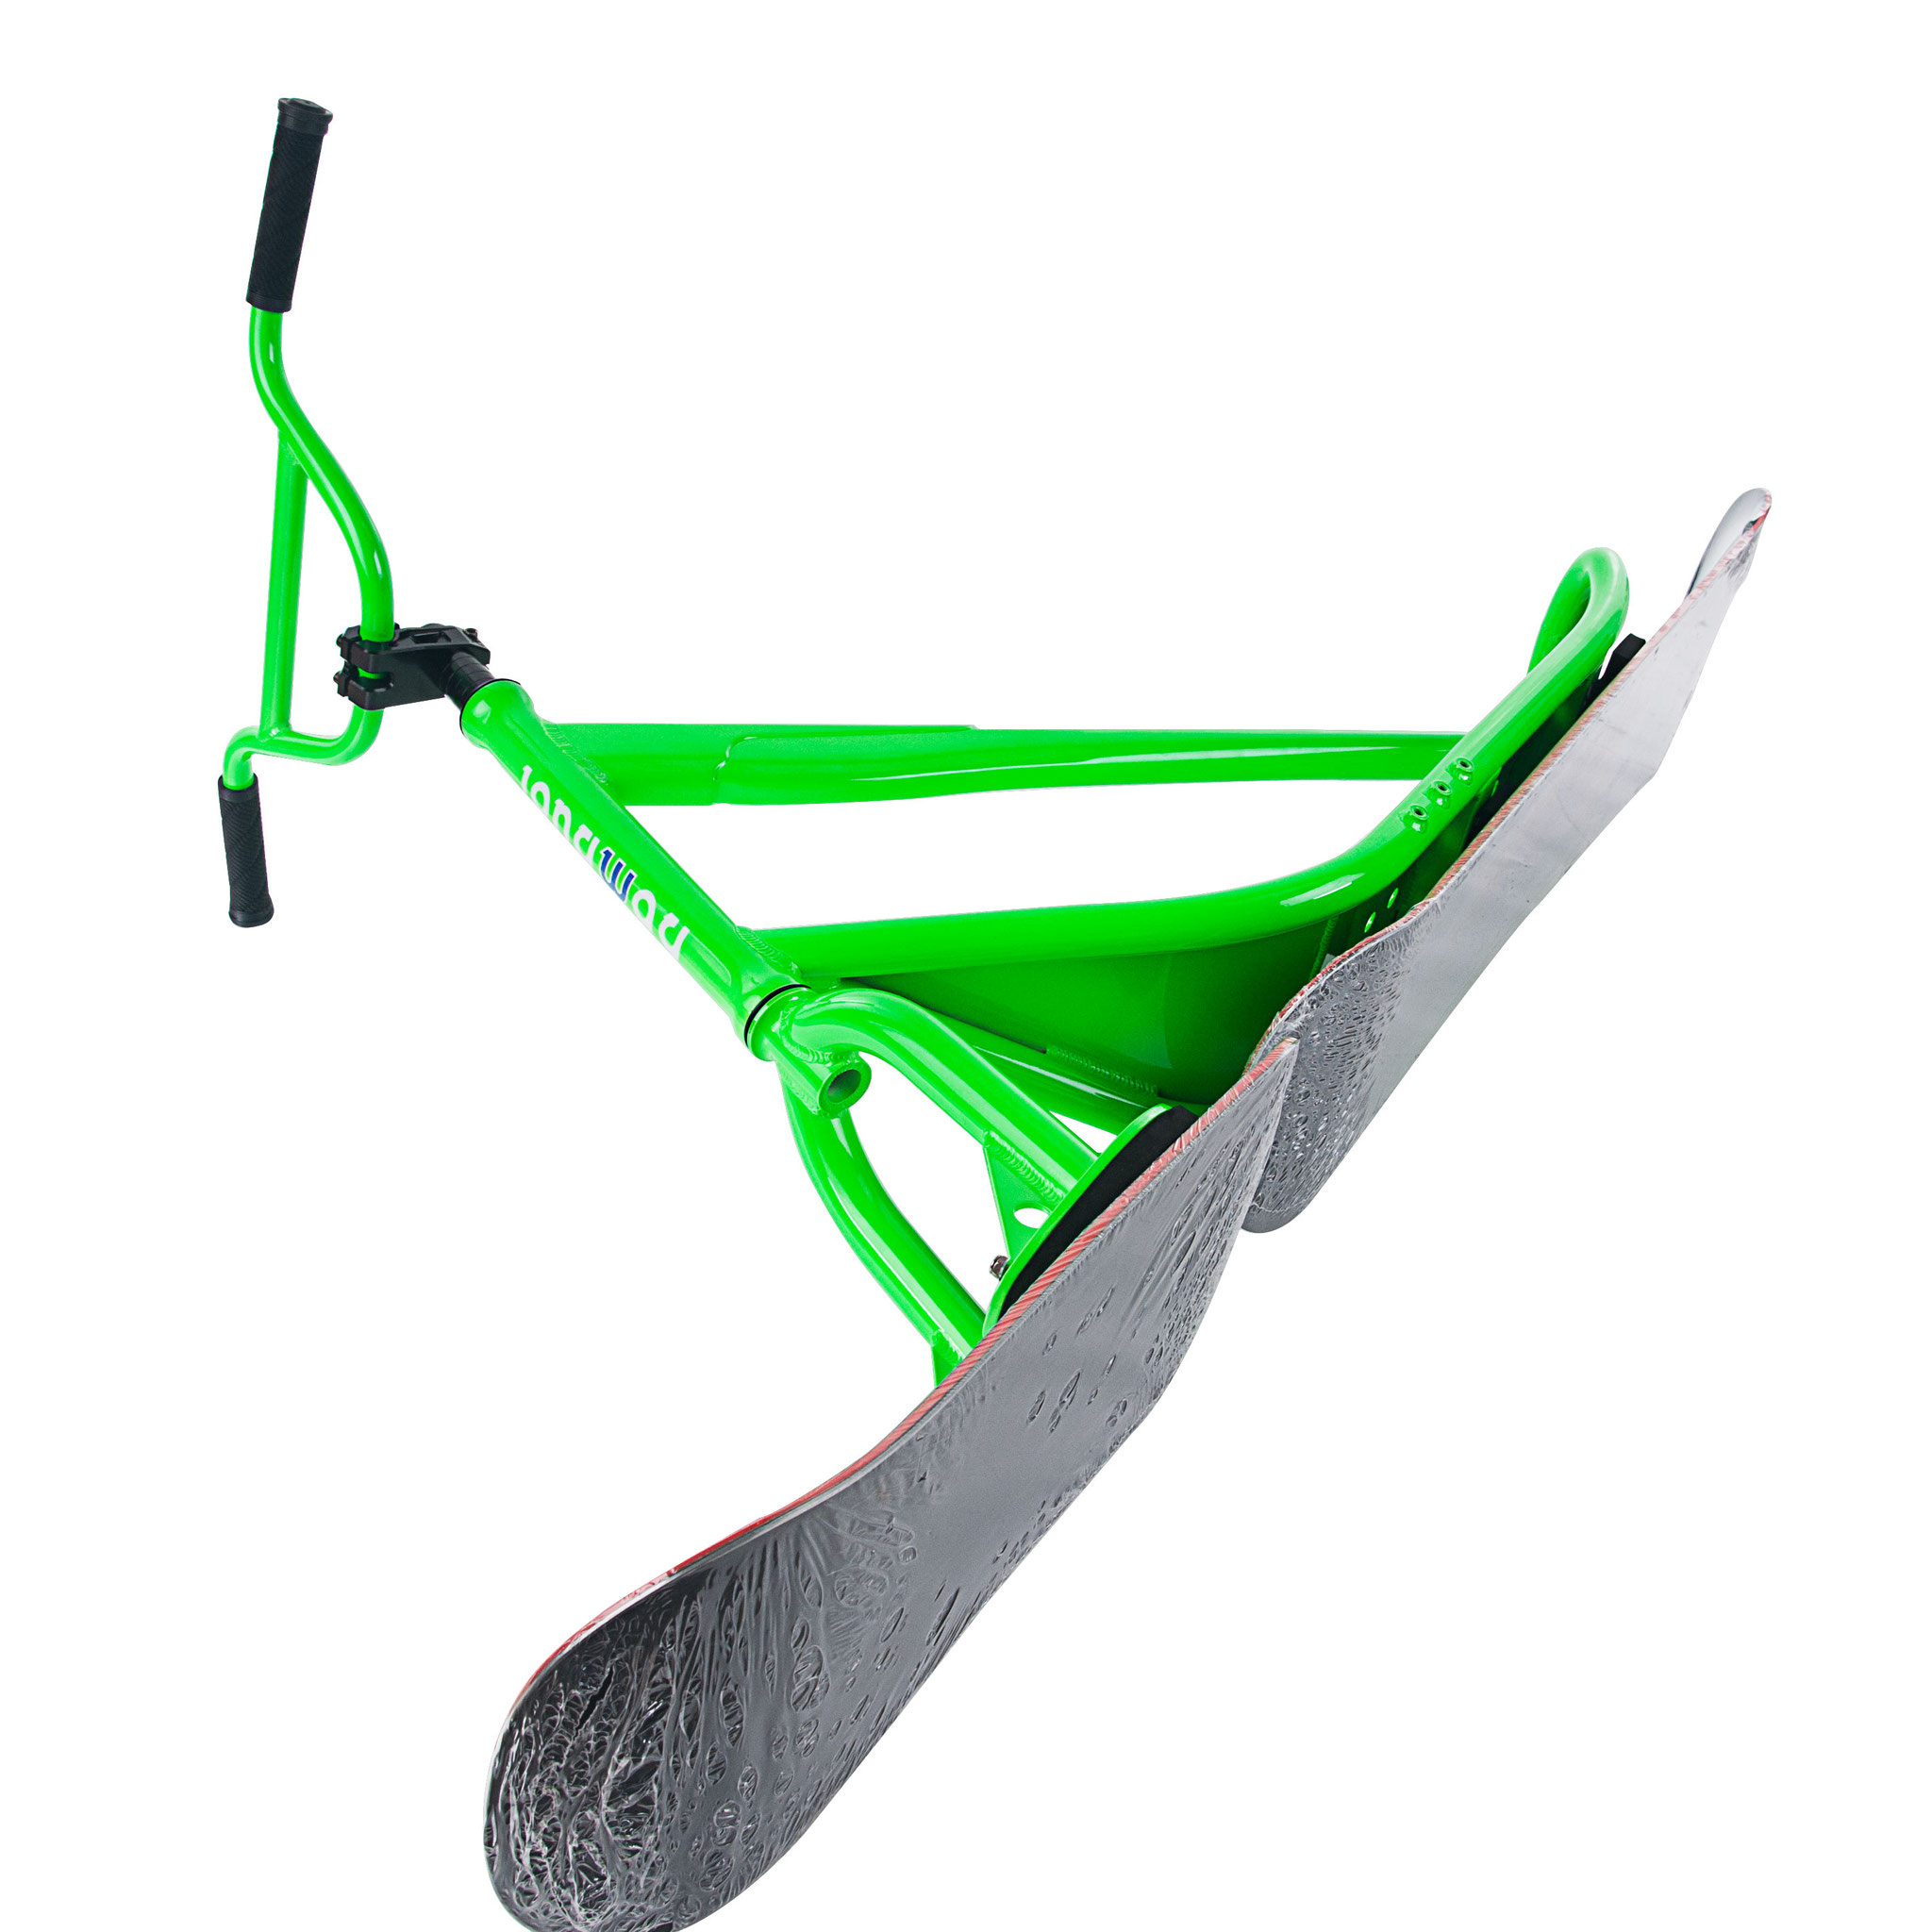 Longway Sports Snowscoot Suilbikes green 6